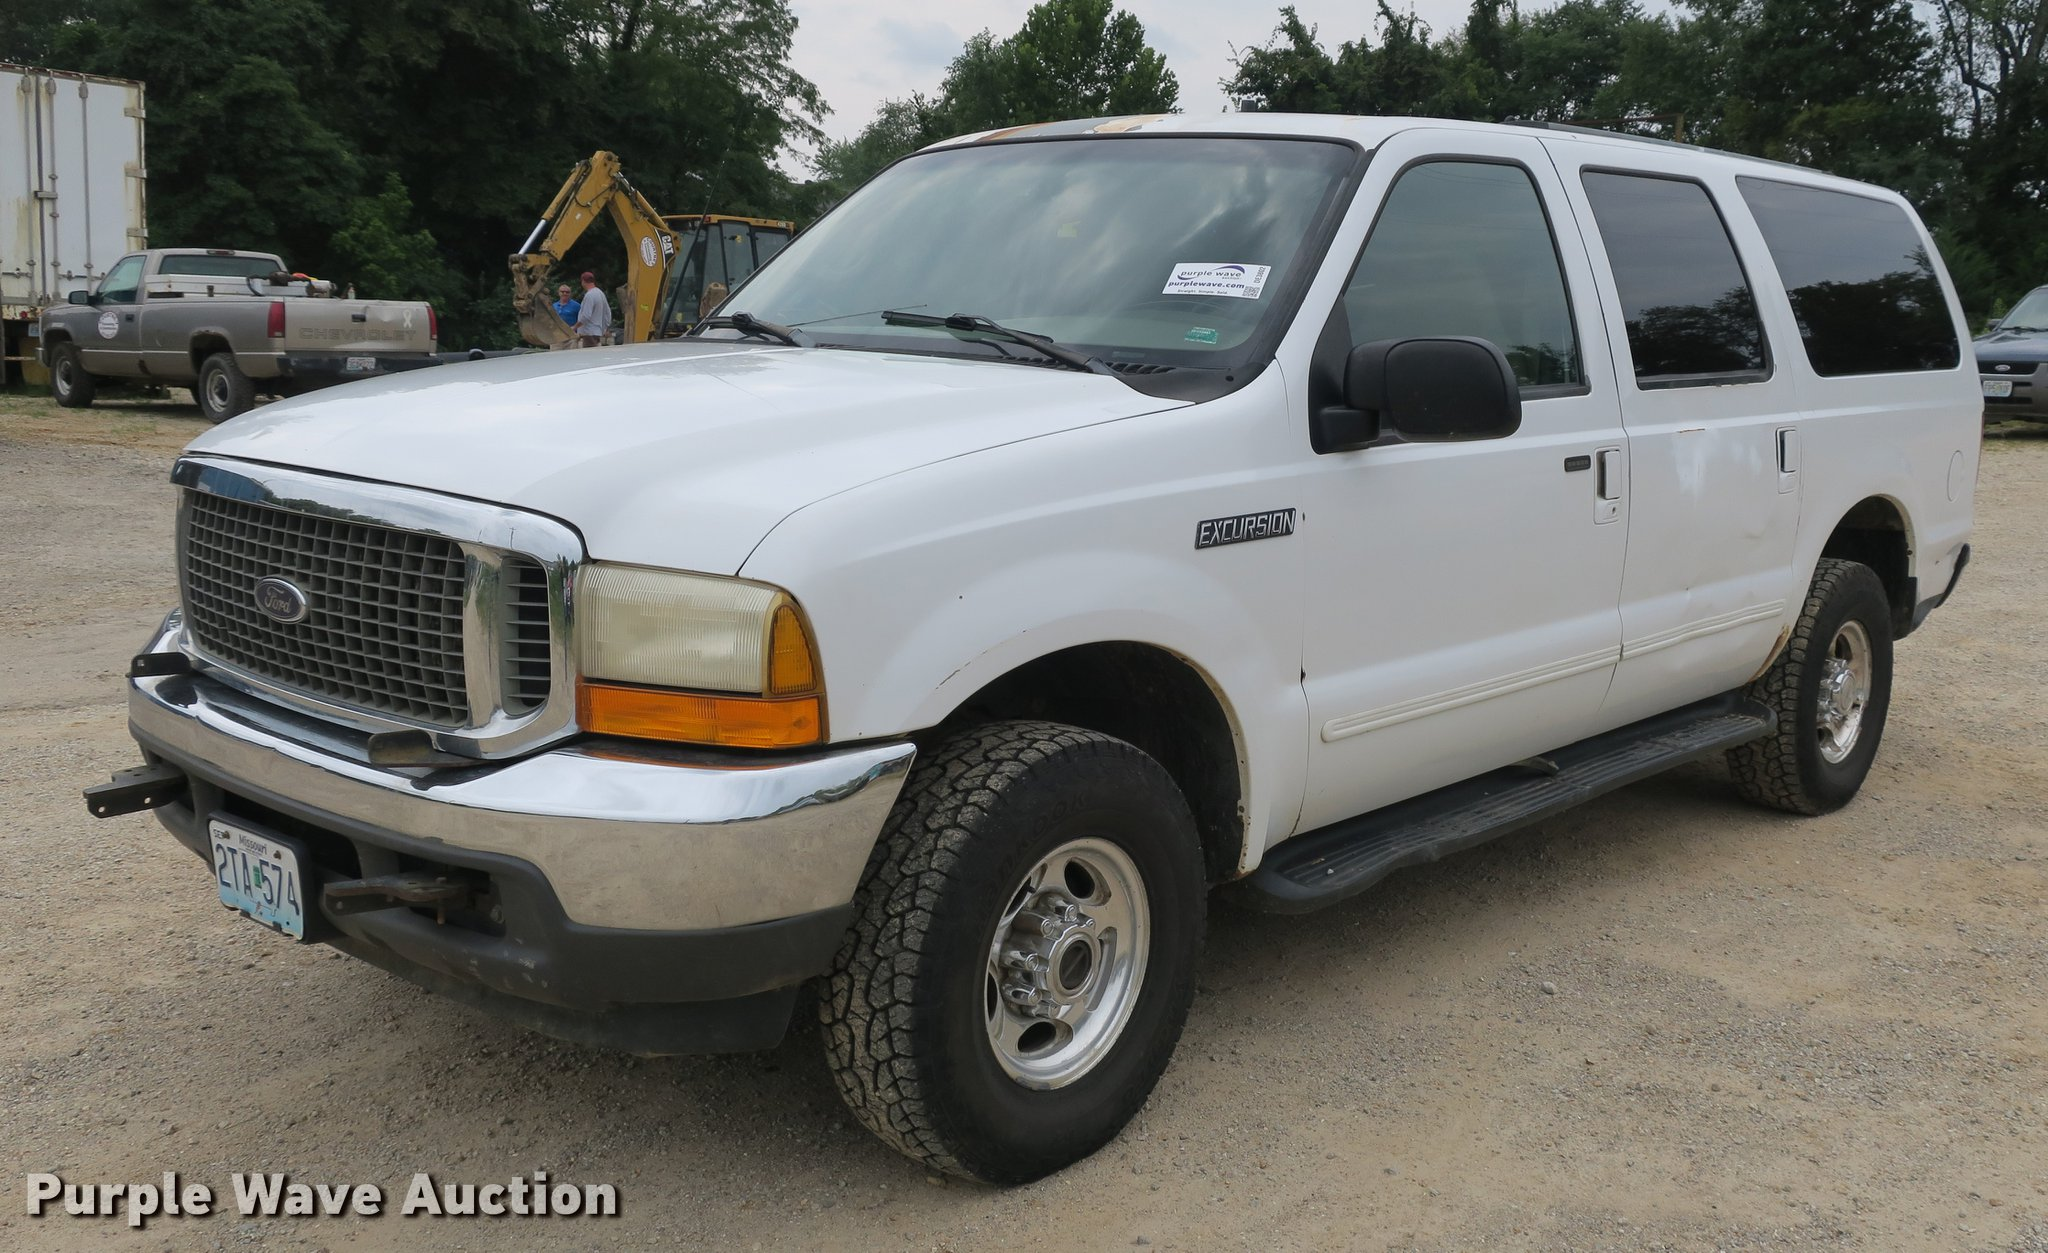 2000 Ford Excursion Suv Item De3802 Sold September 26 V Power Window Wiring Full Size In New